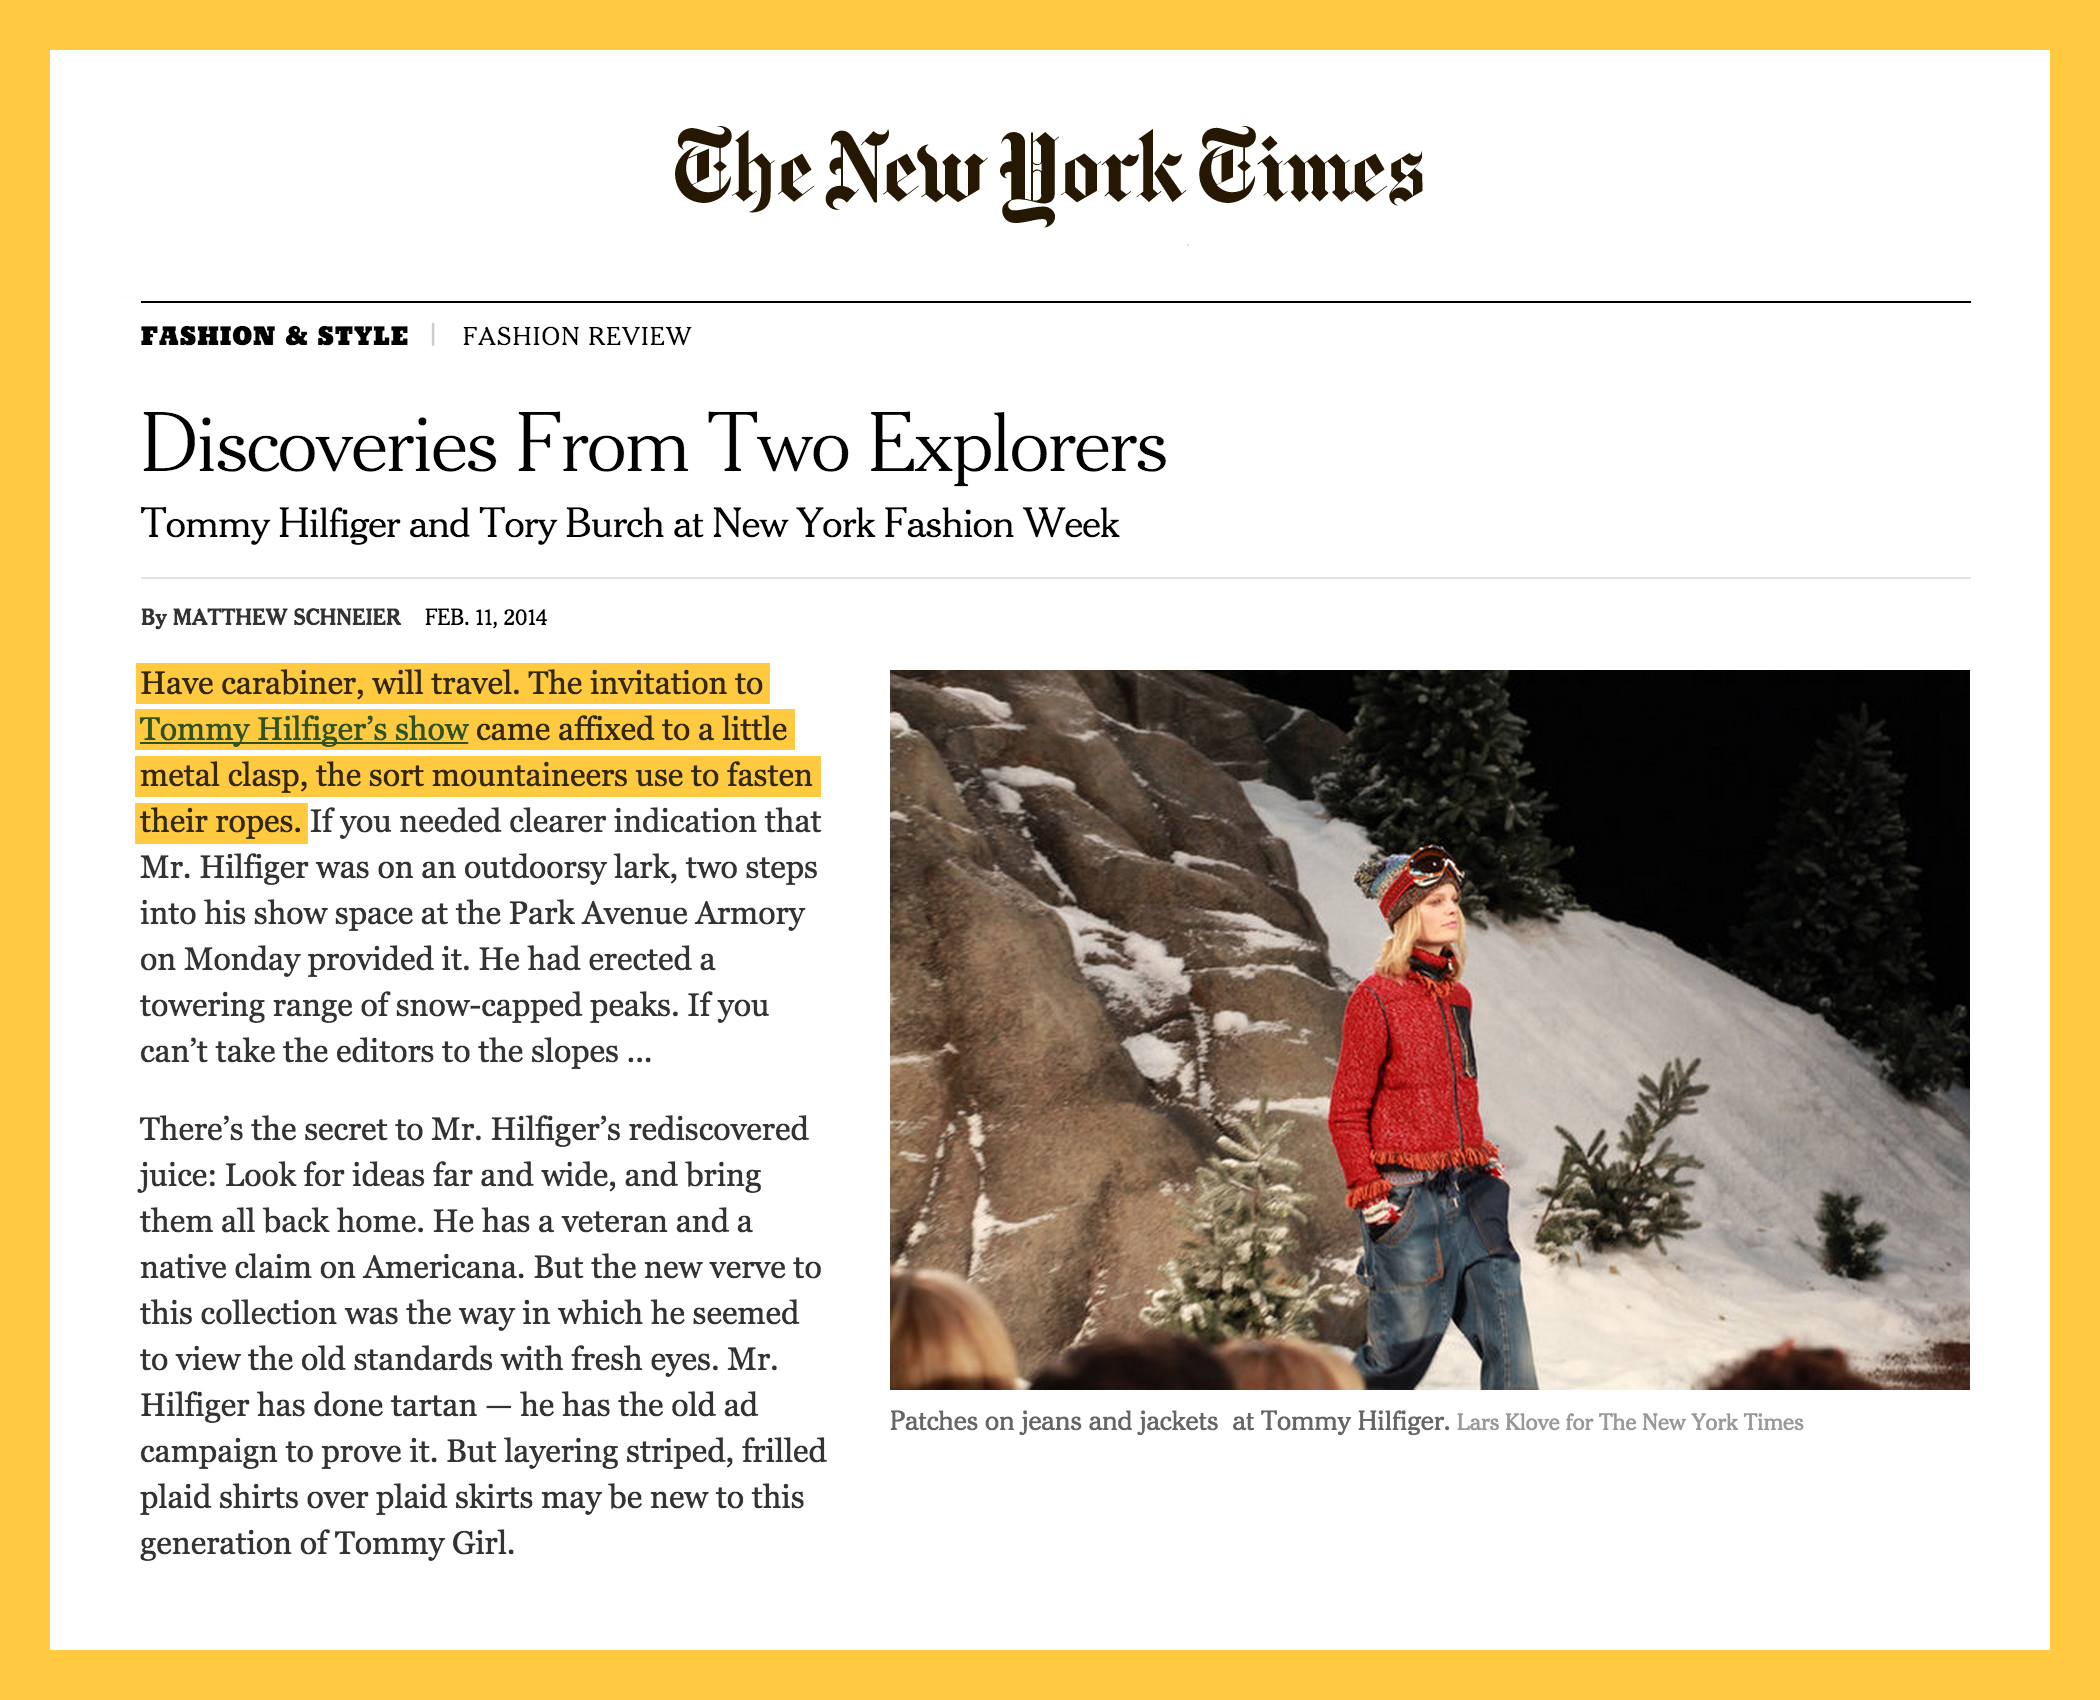 Reaching the peak with  The   New York Times    coverage.